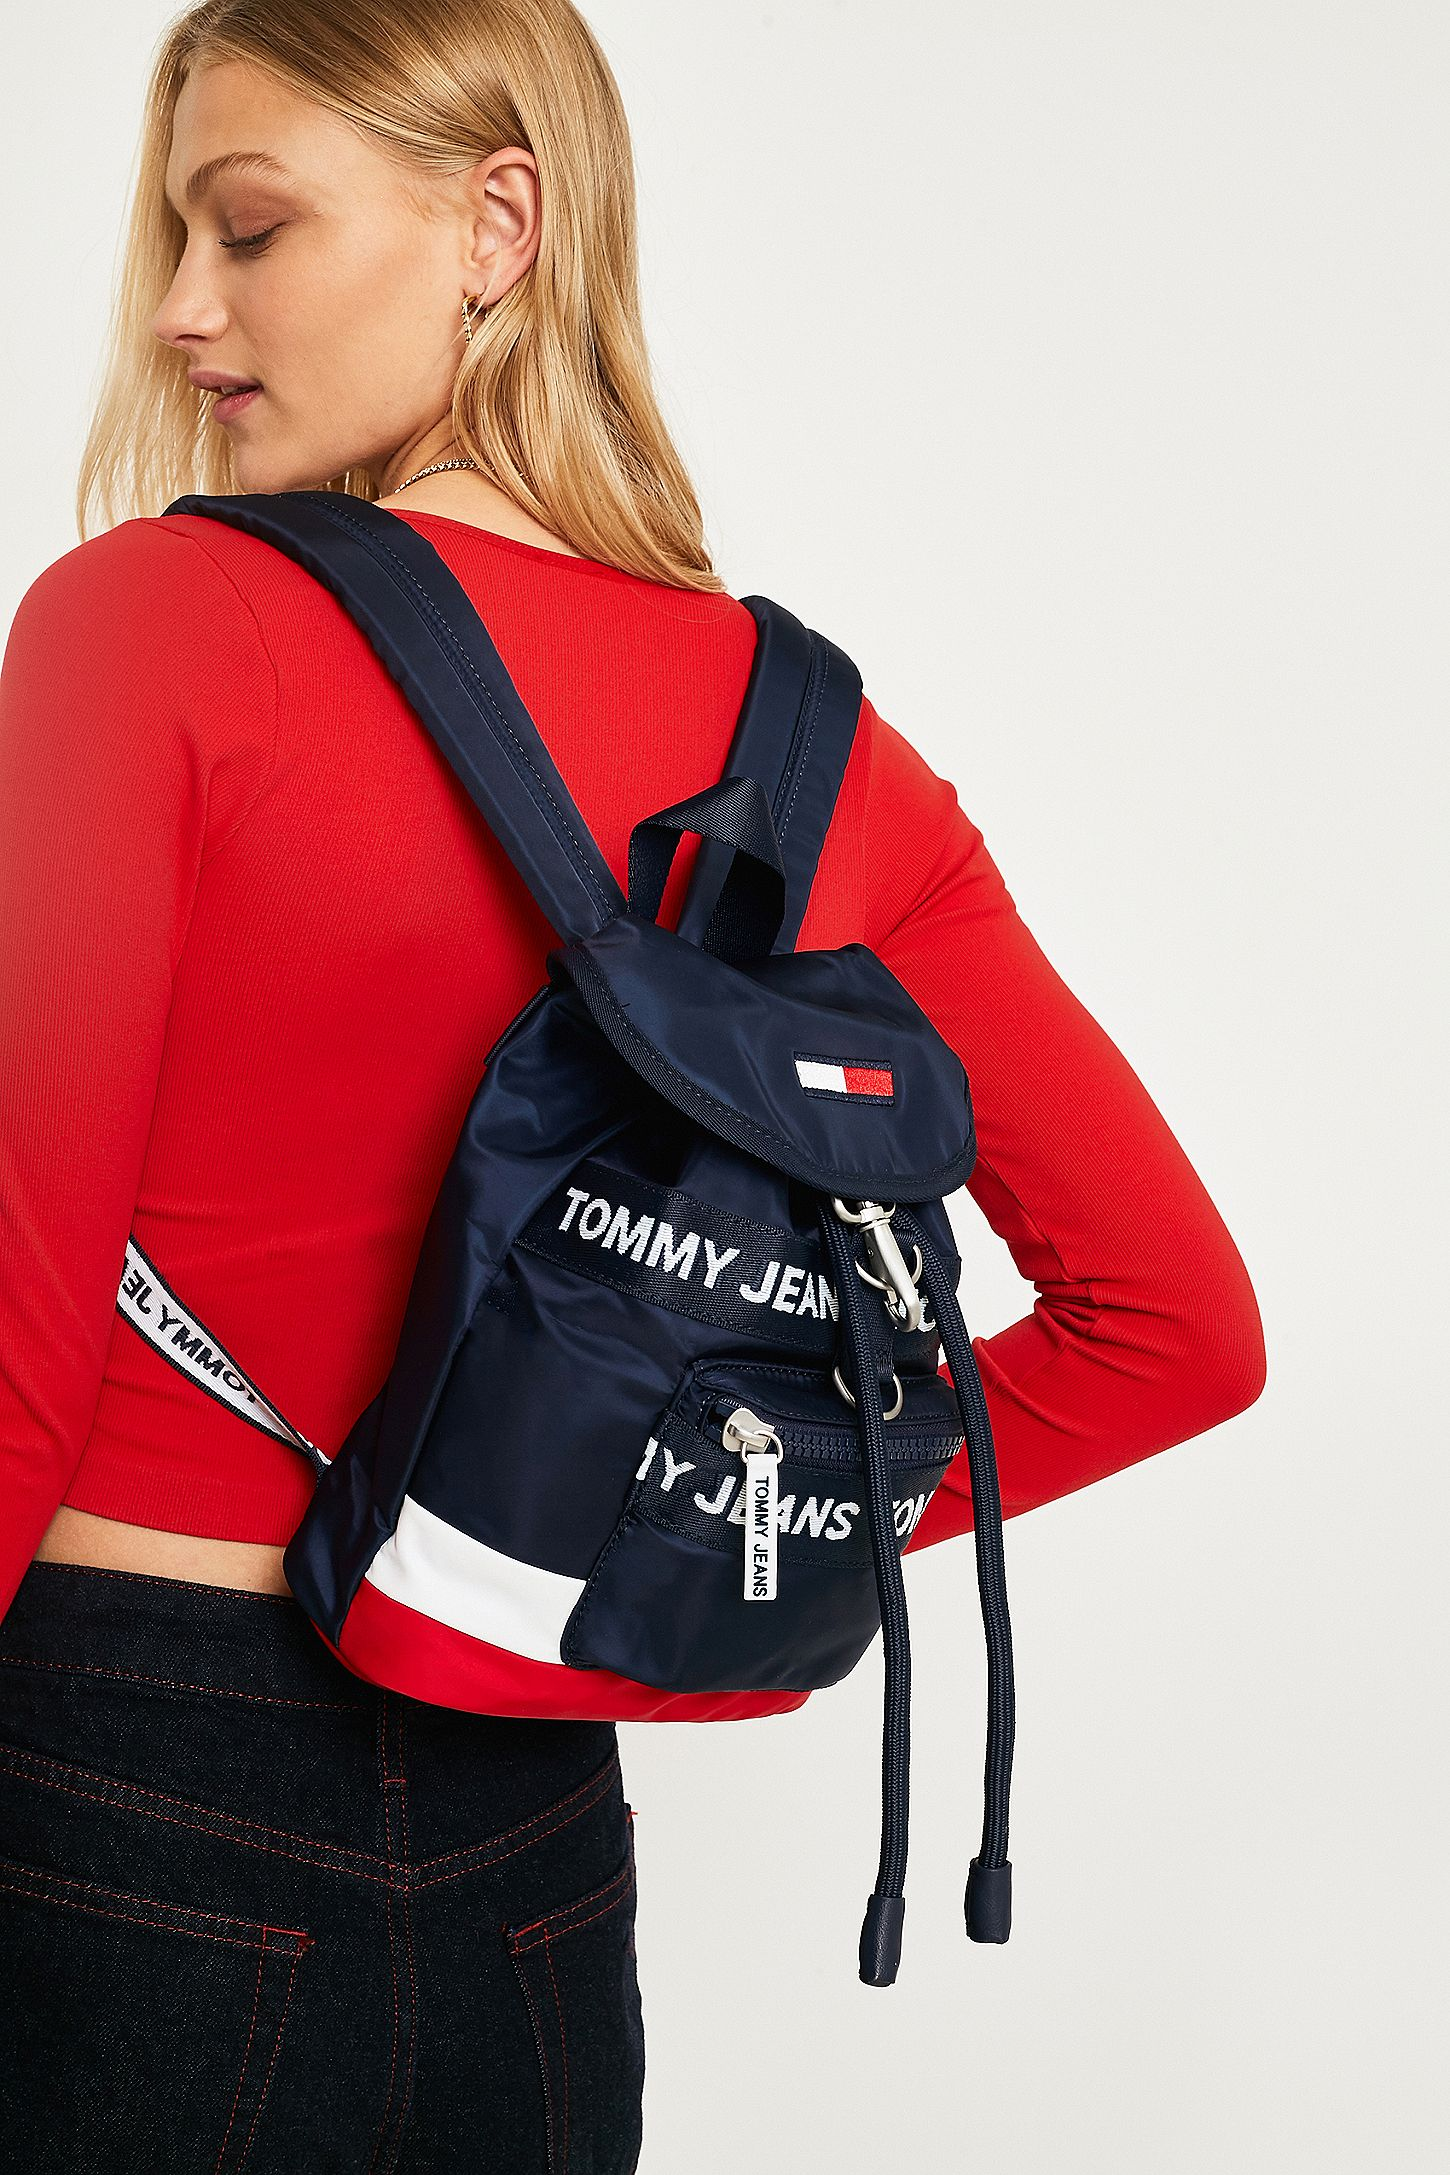 157bb0fe Tommy Jeans Heritage Mini Backpack. Click on image to zoom. Hover to zoom.  Double Tap to Zoom